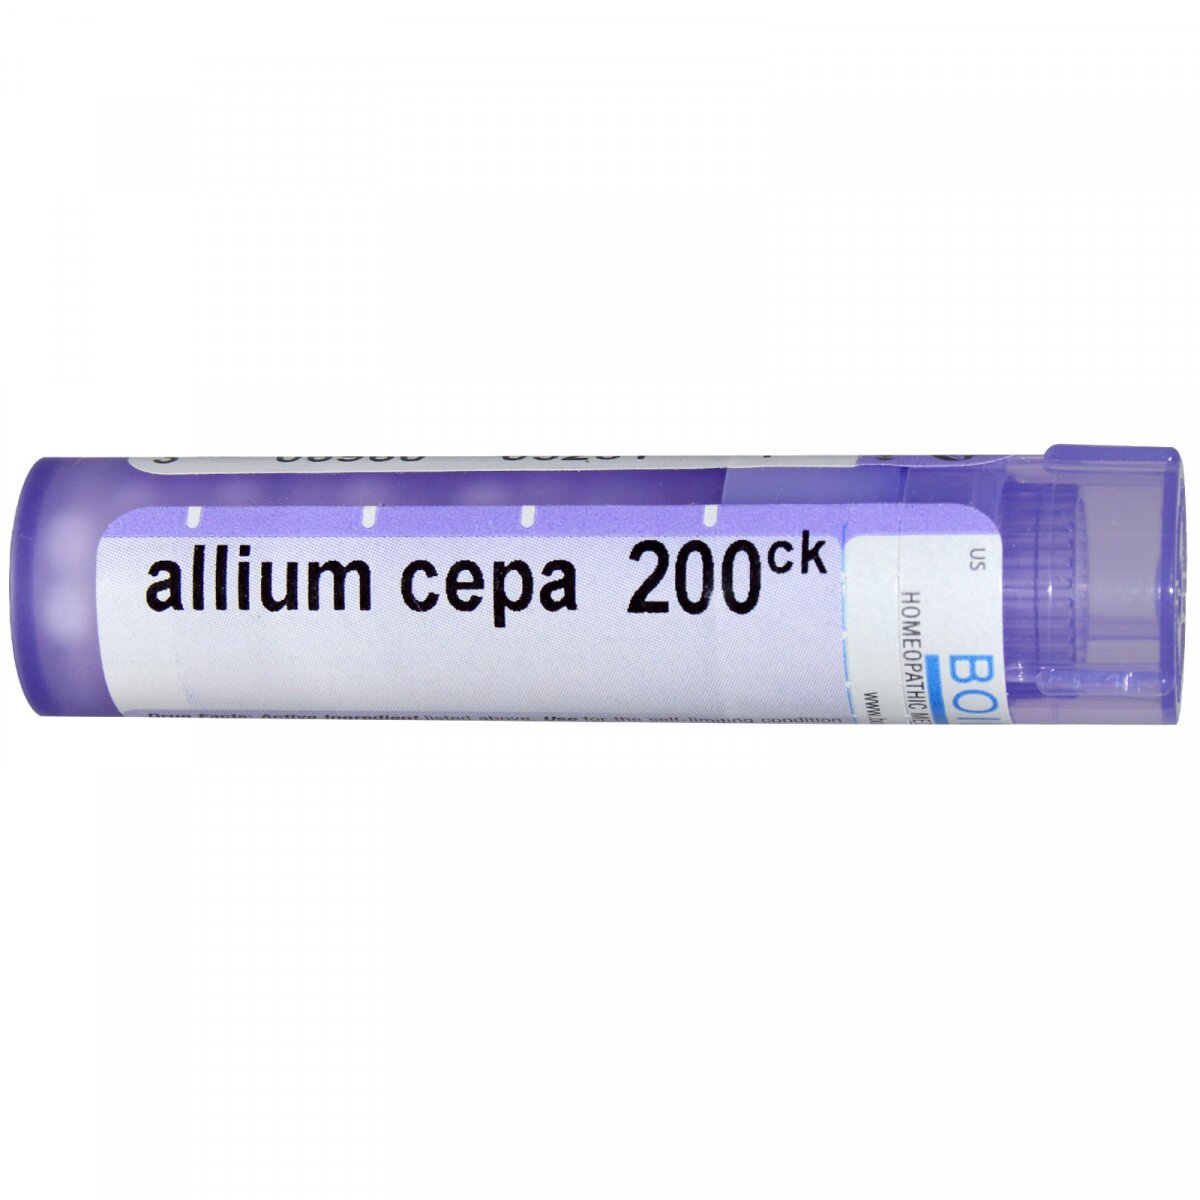 Лук репчатый (Allium cepa) 200CК, Boiron, Single Remedies, примерно 80 драже